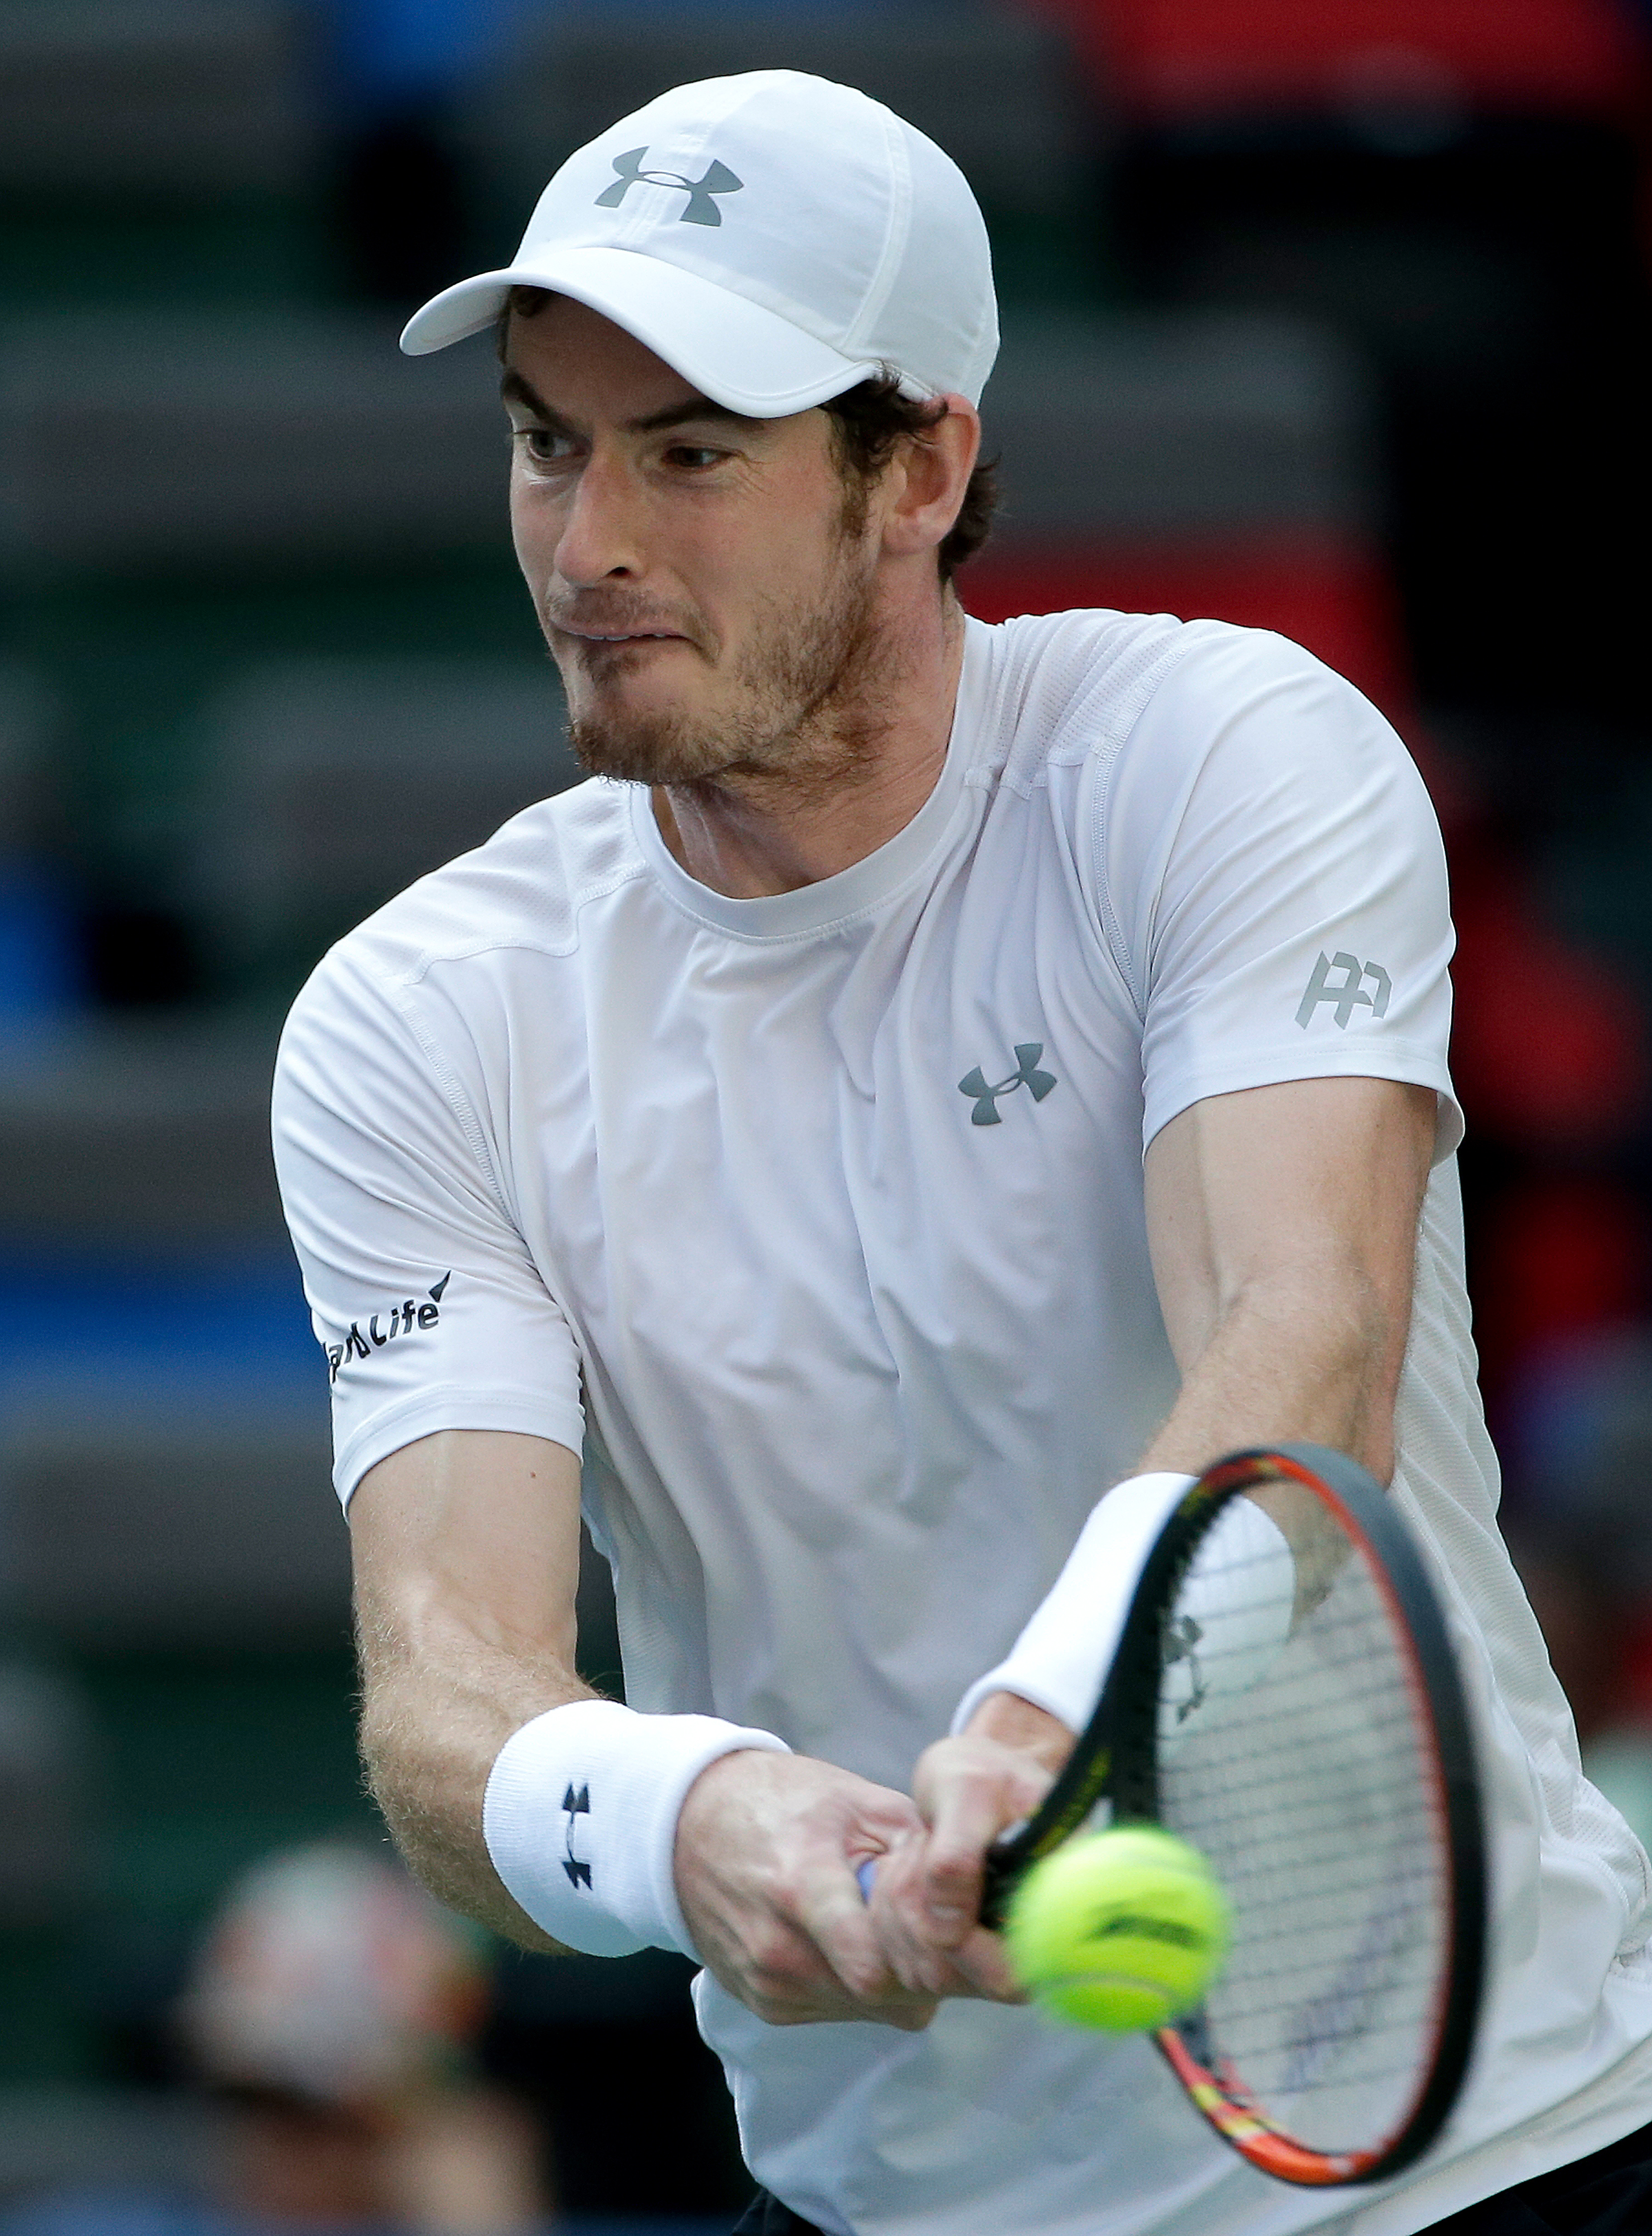 Andy Murray of Britain hits a return shot as he plays against John Isner of the United States in the Shanghai Masters tennis tournament in Shanghai, China, Thursday, Oct. 15, 2015. (AP Photo/Andy Wong)